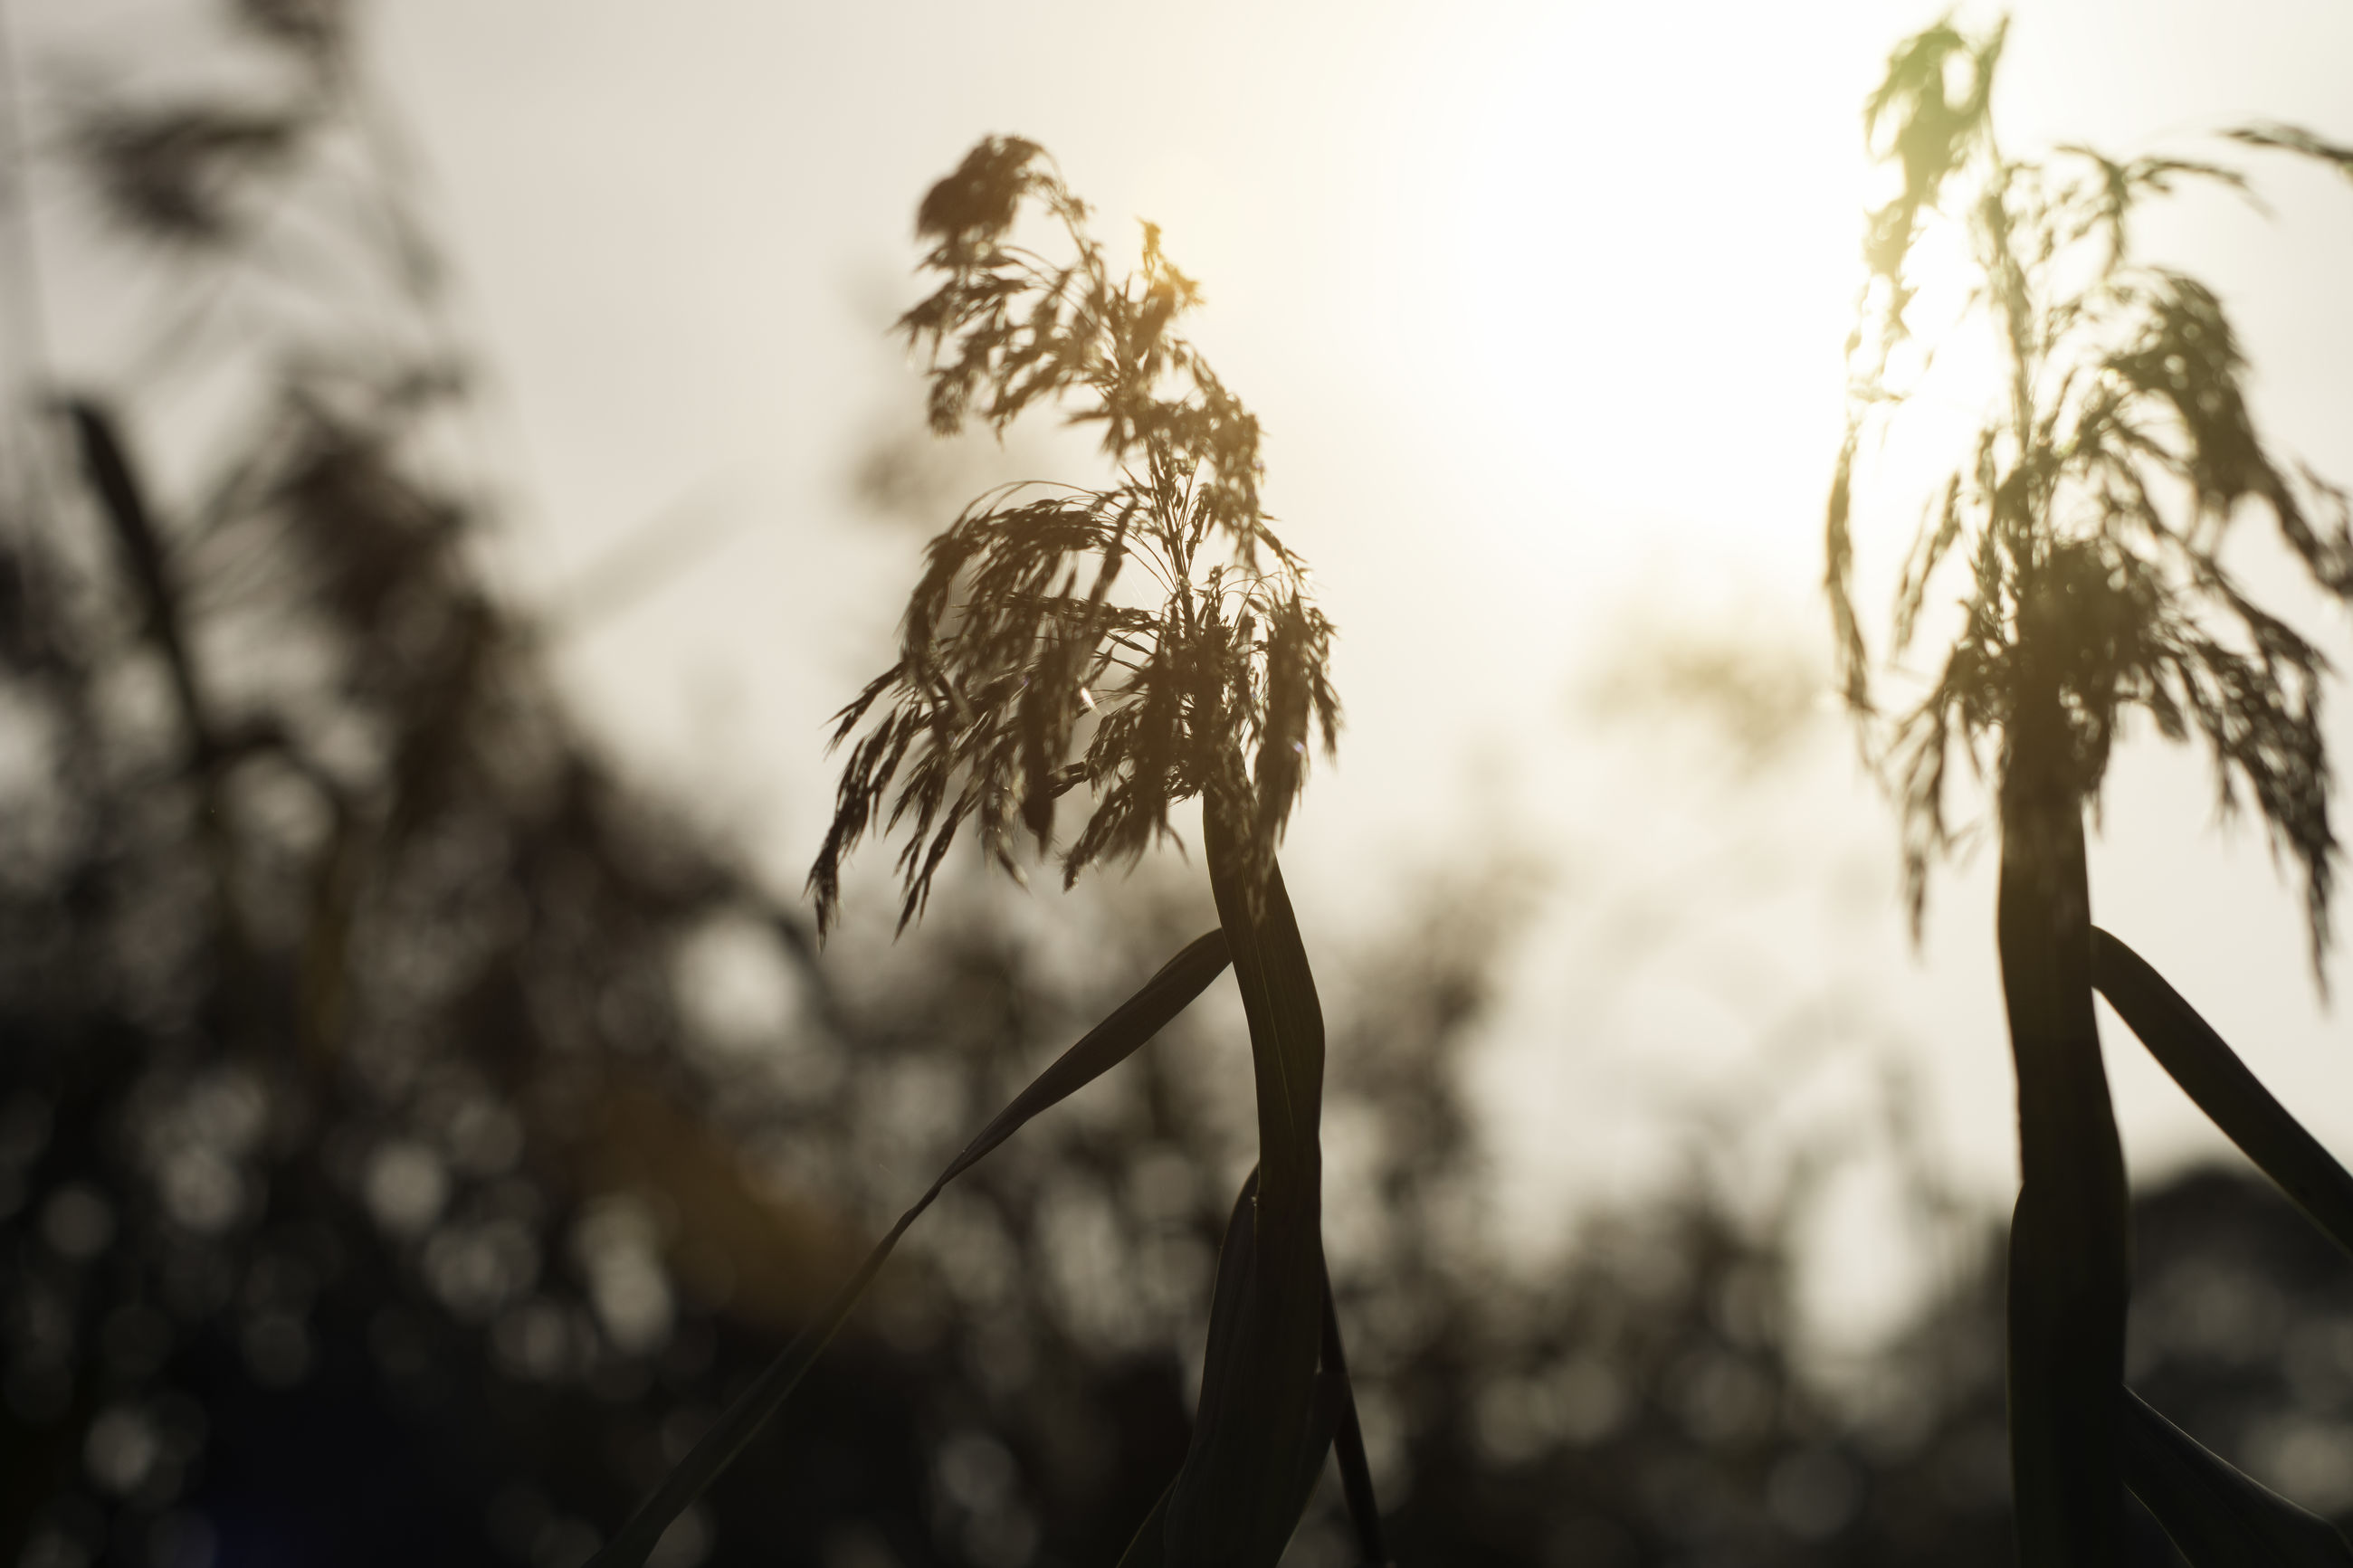 nature, growth, plant, focus on foreground, no people, outdoors, close-up, flower, low angle view, fragility, tranquility, beauty in nature, sky, day, dried plant, wilted plant